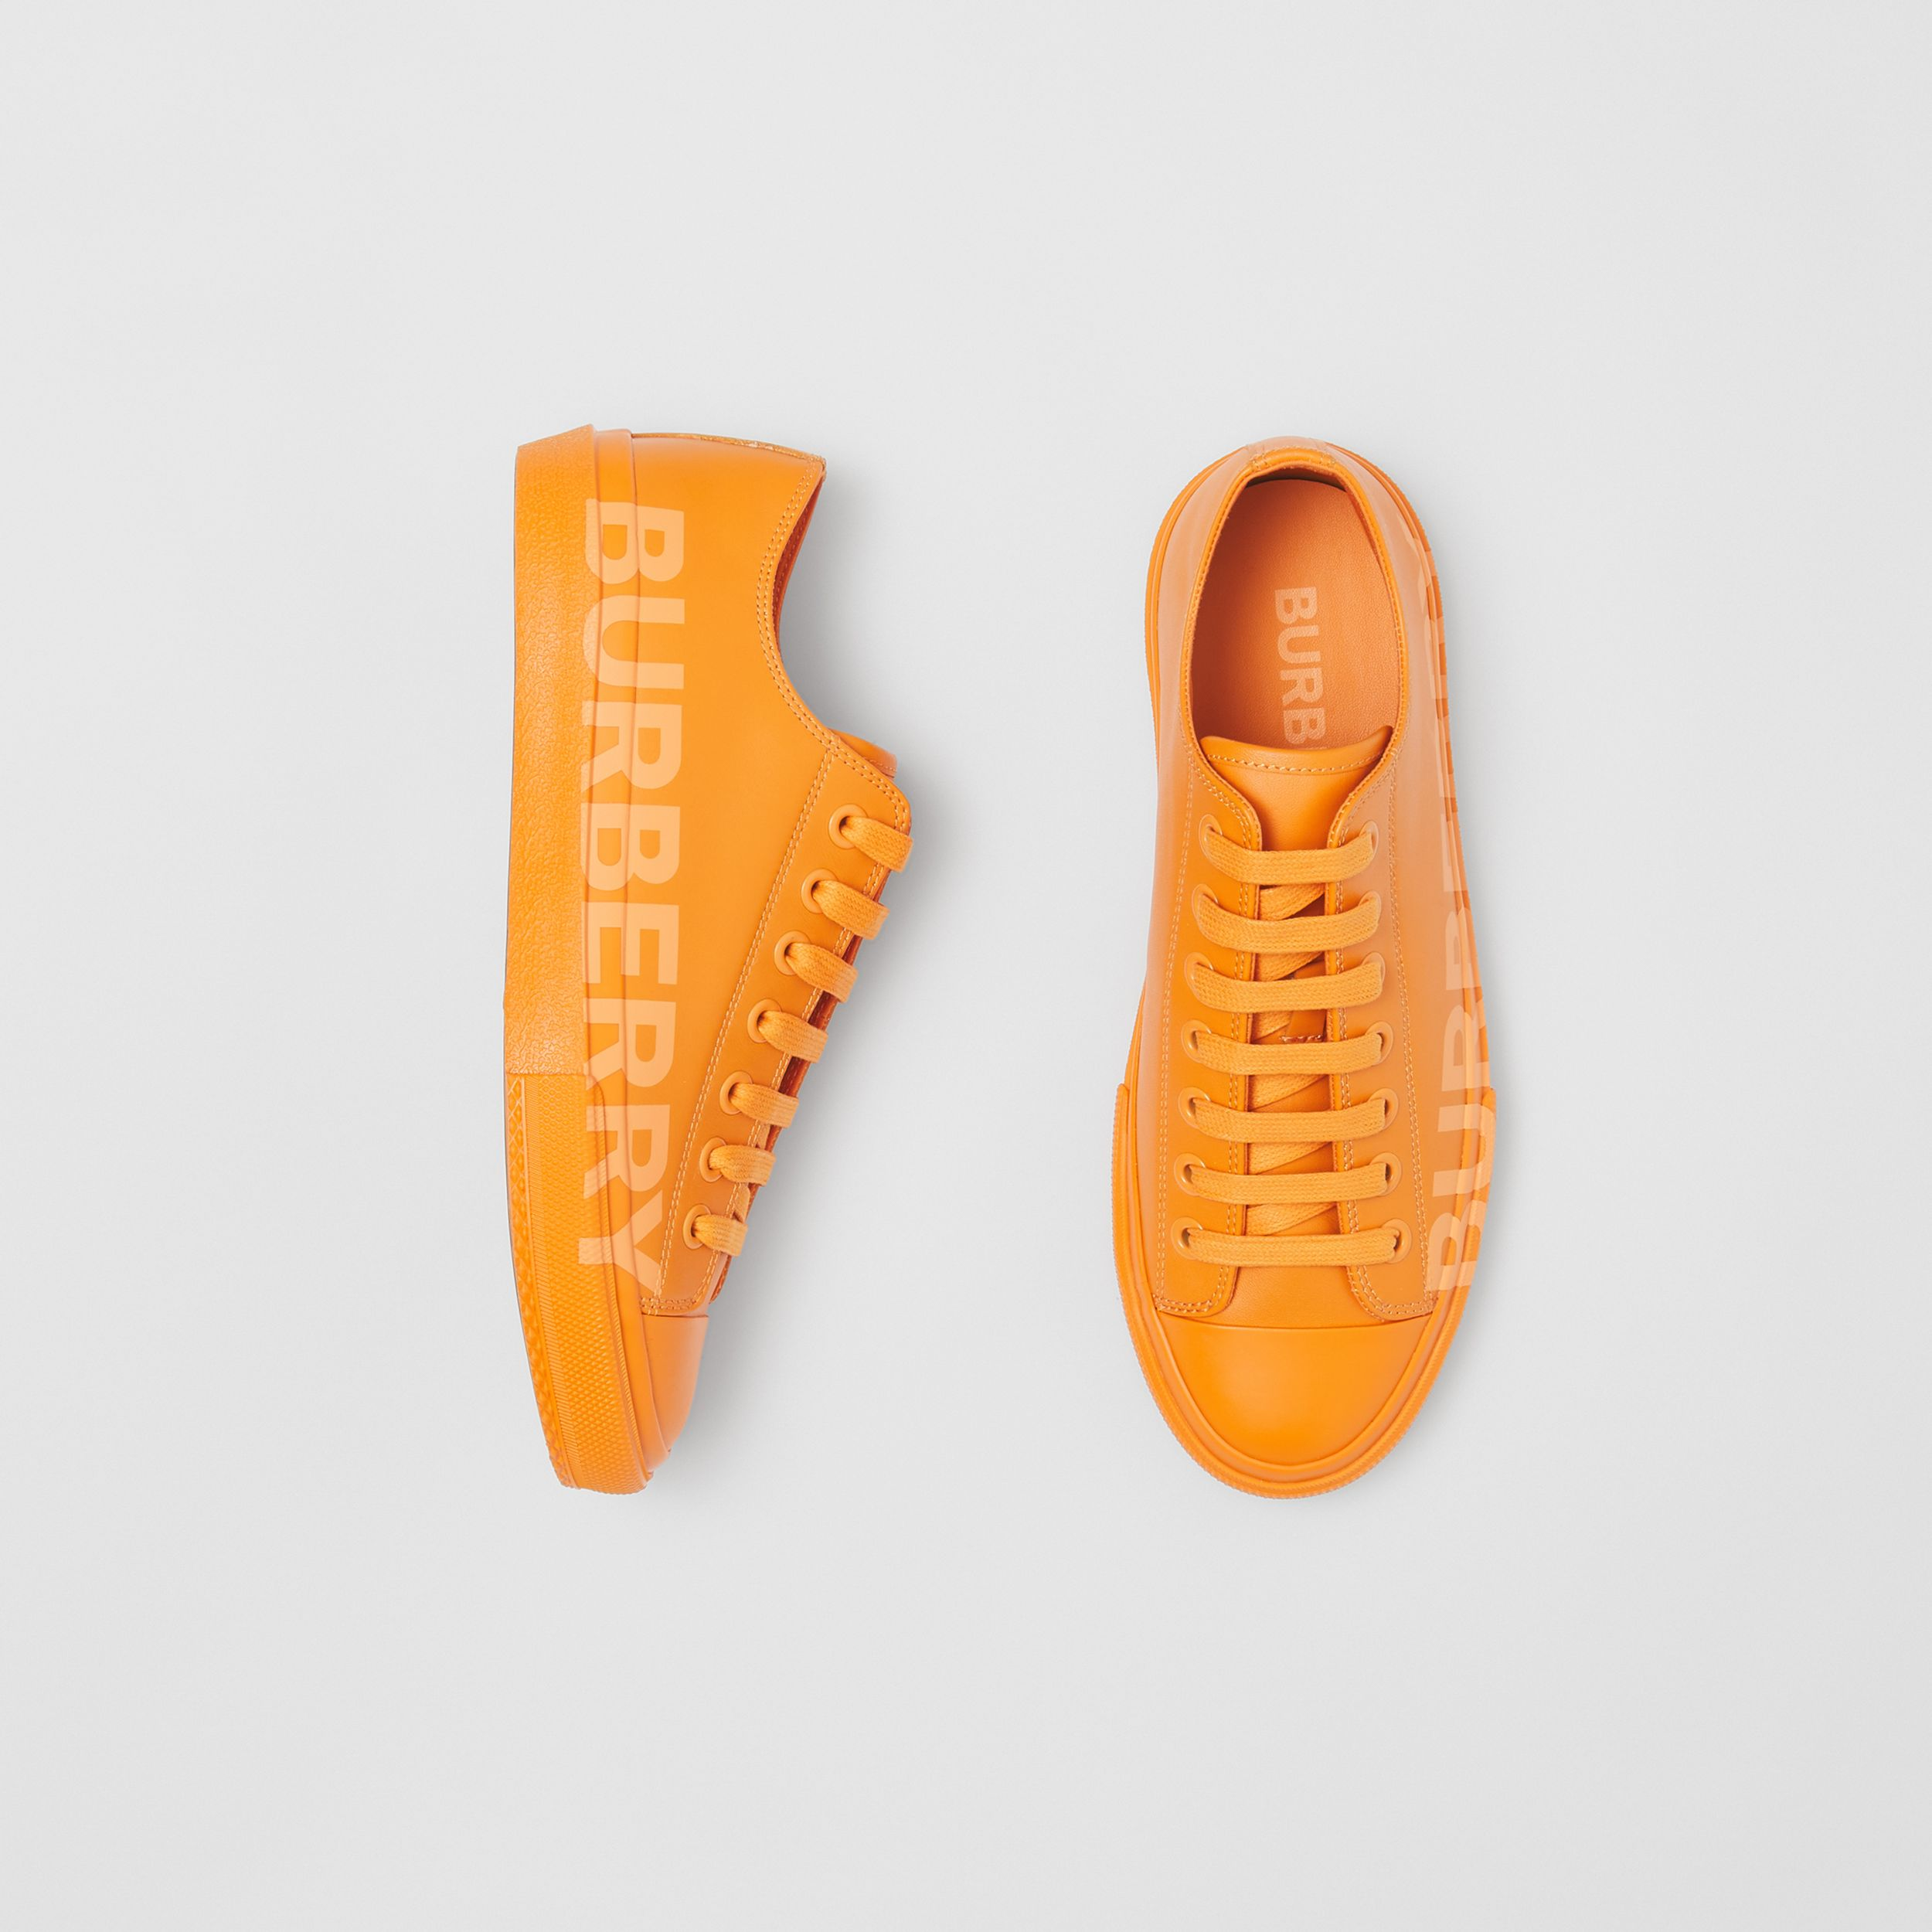 Logo Print Leather Sneakers – Online Exclusive in Deep Orange - Women | Burberry - 1